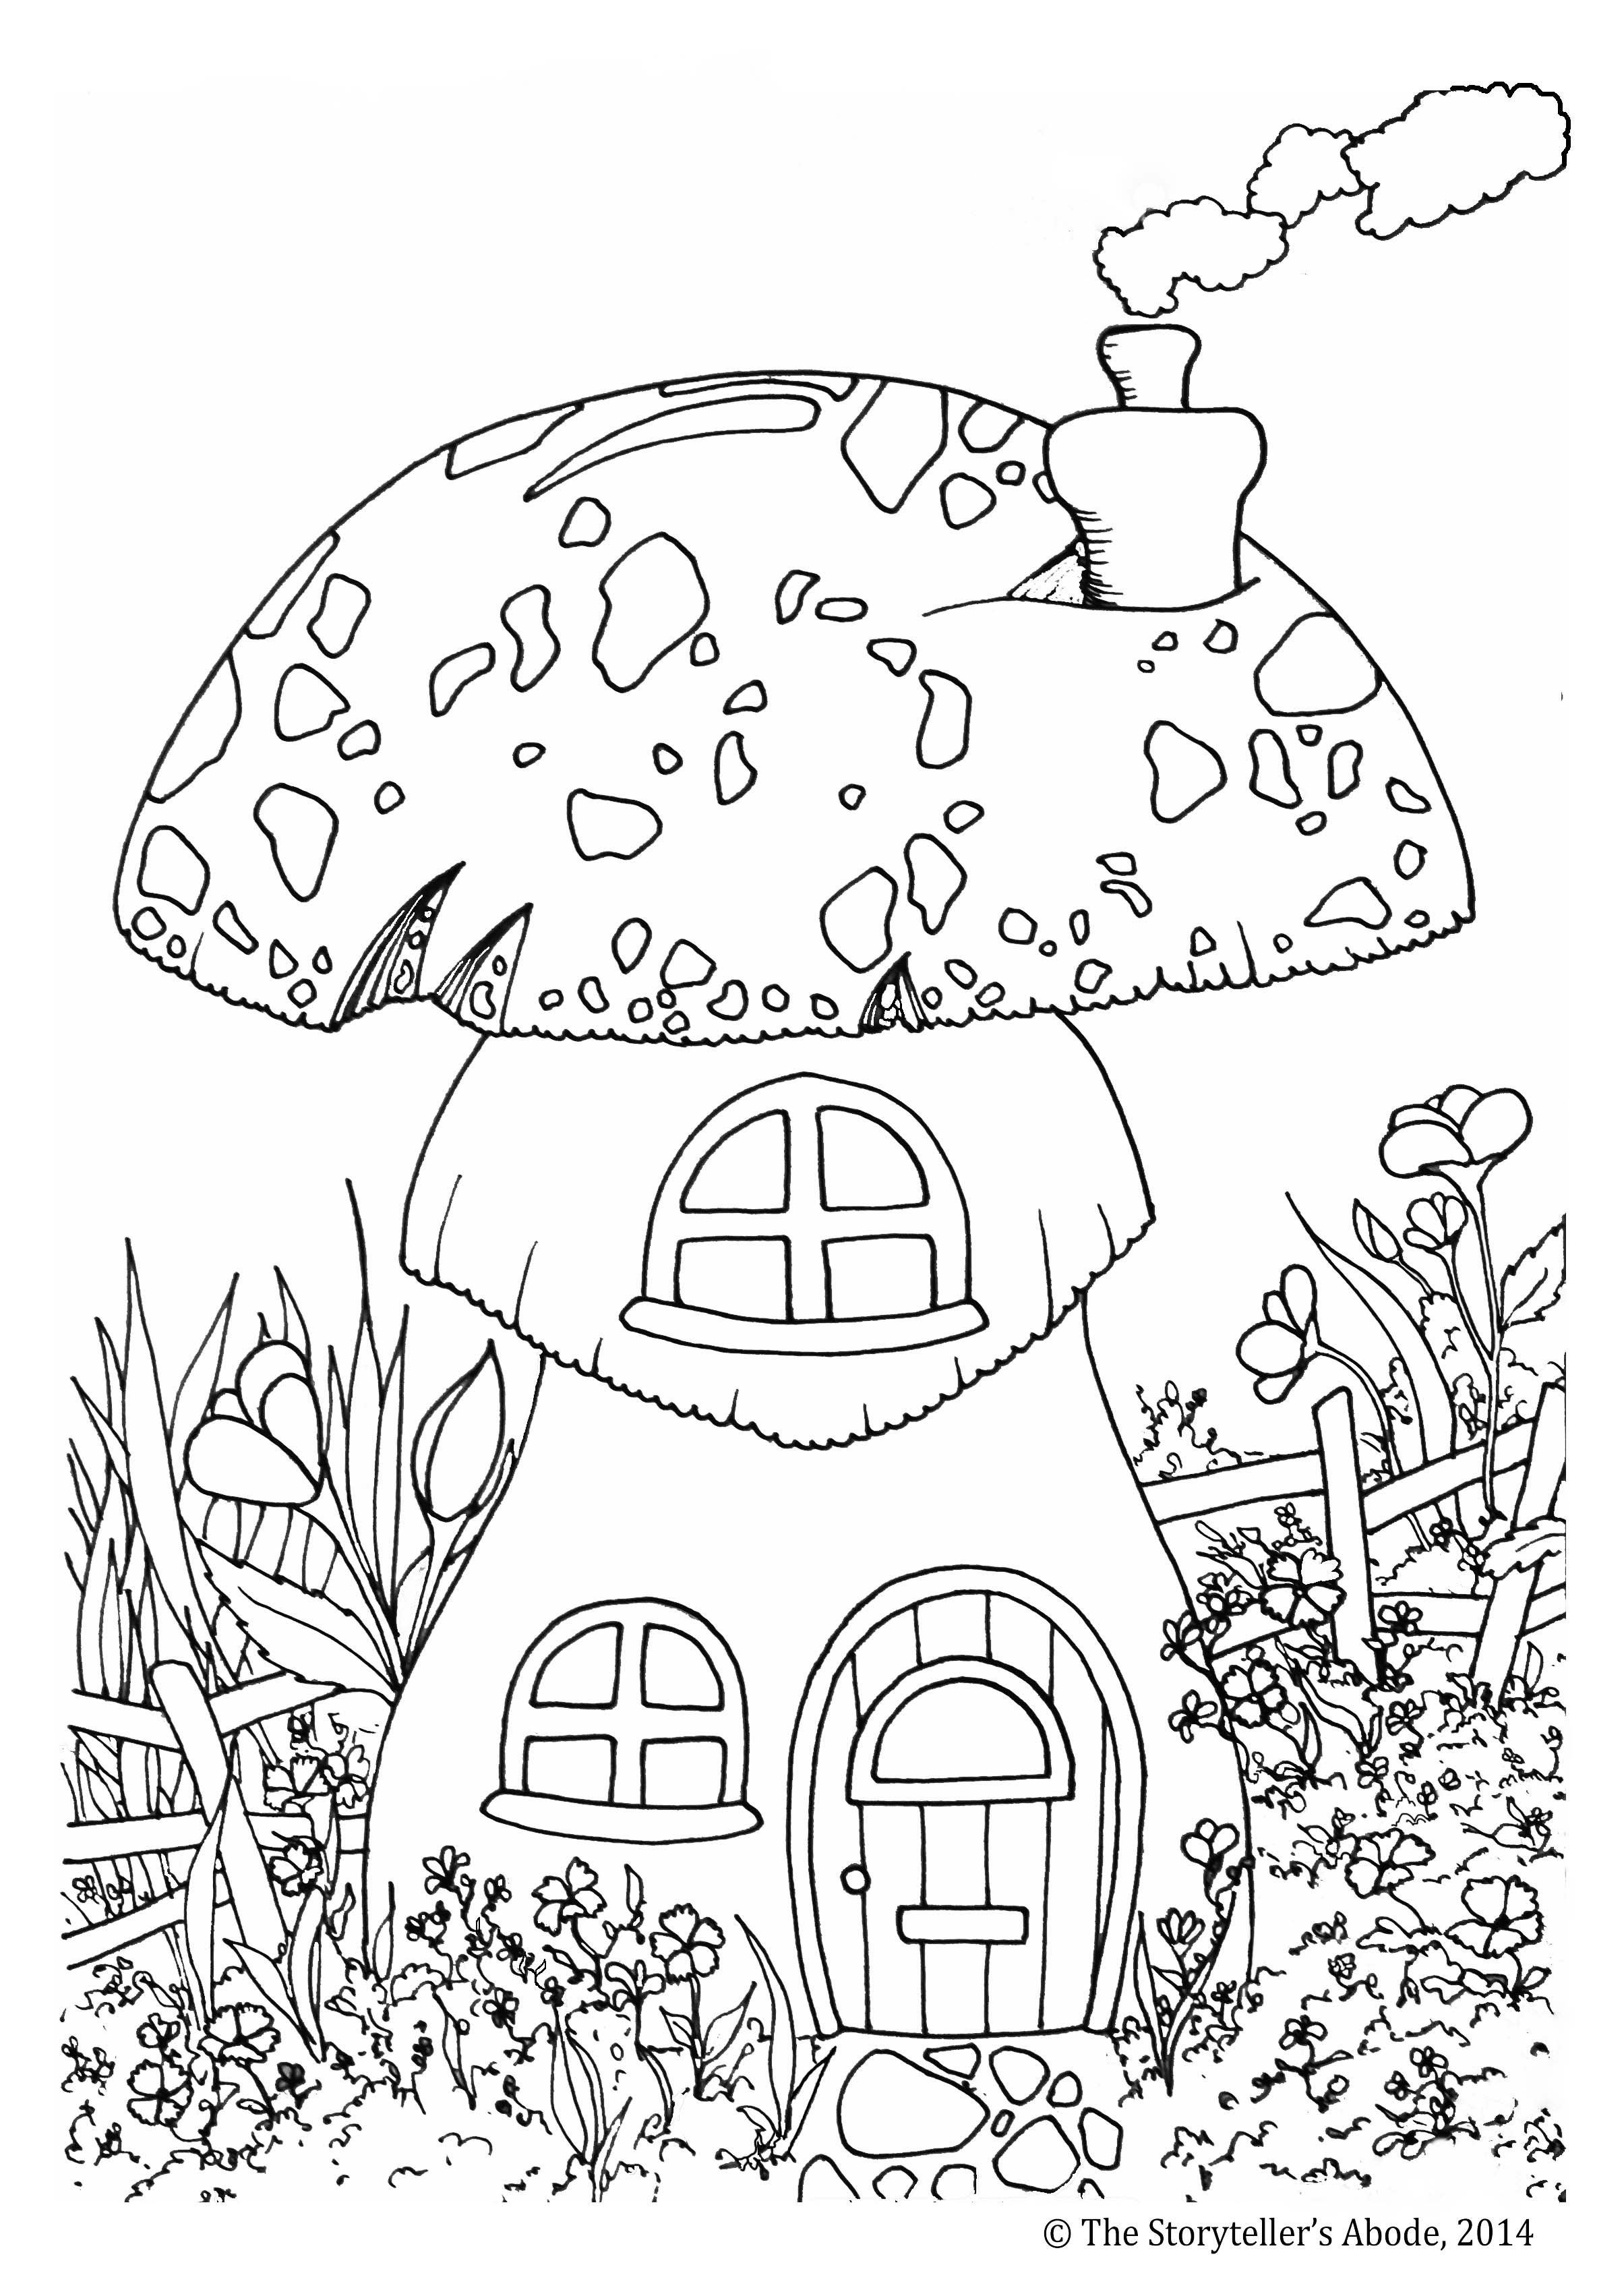 Princess castle colouring page | Castle coloring page, Coloring ... | 3402x2409